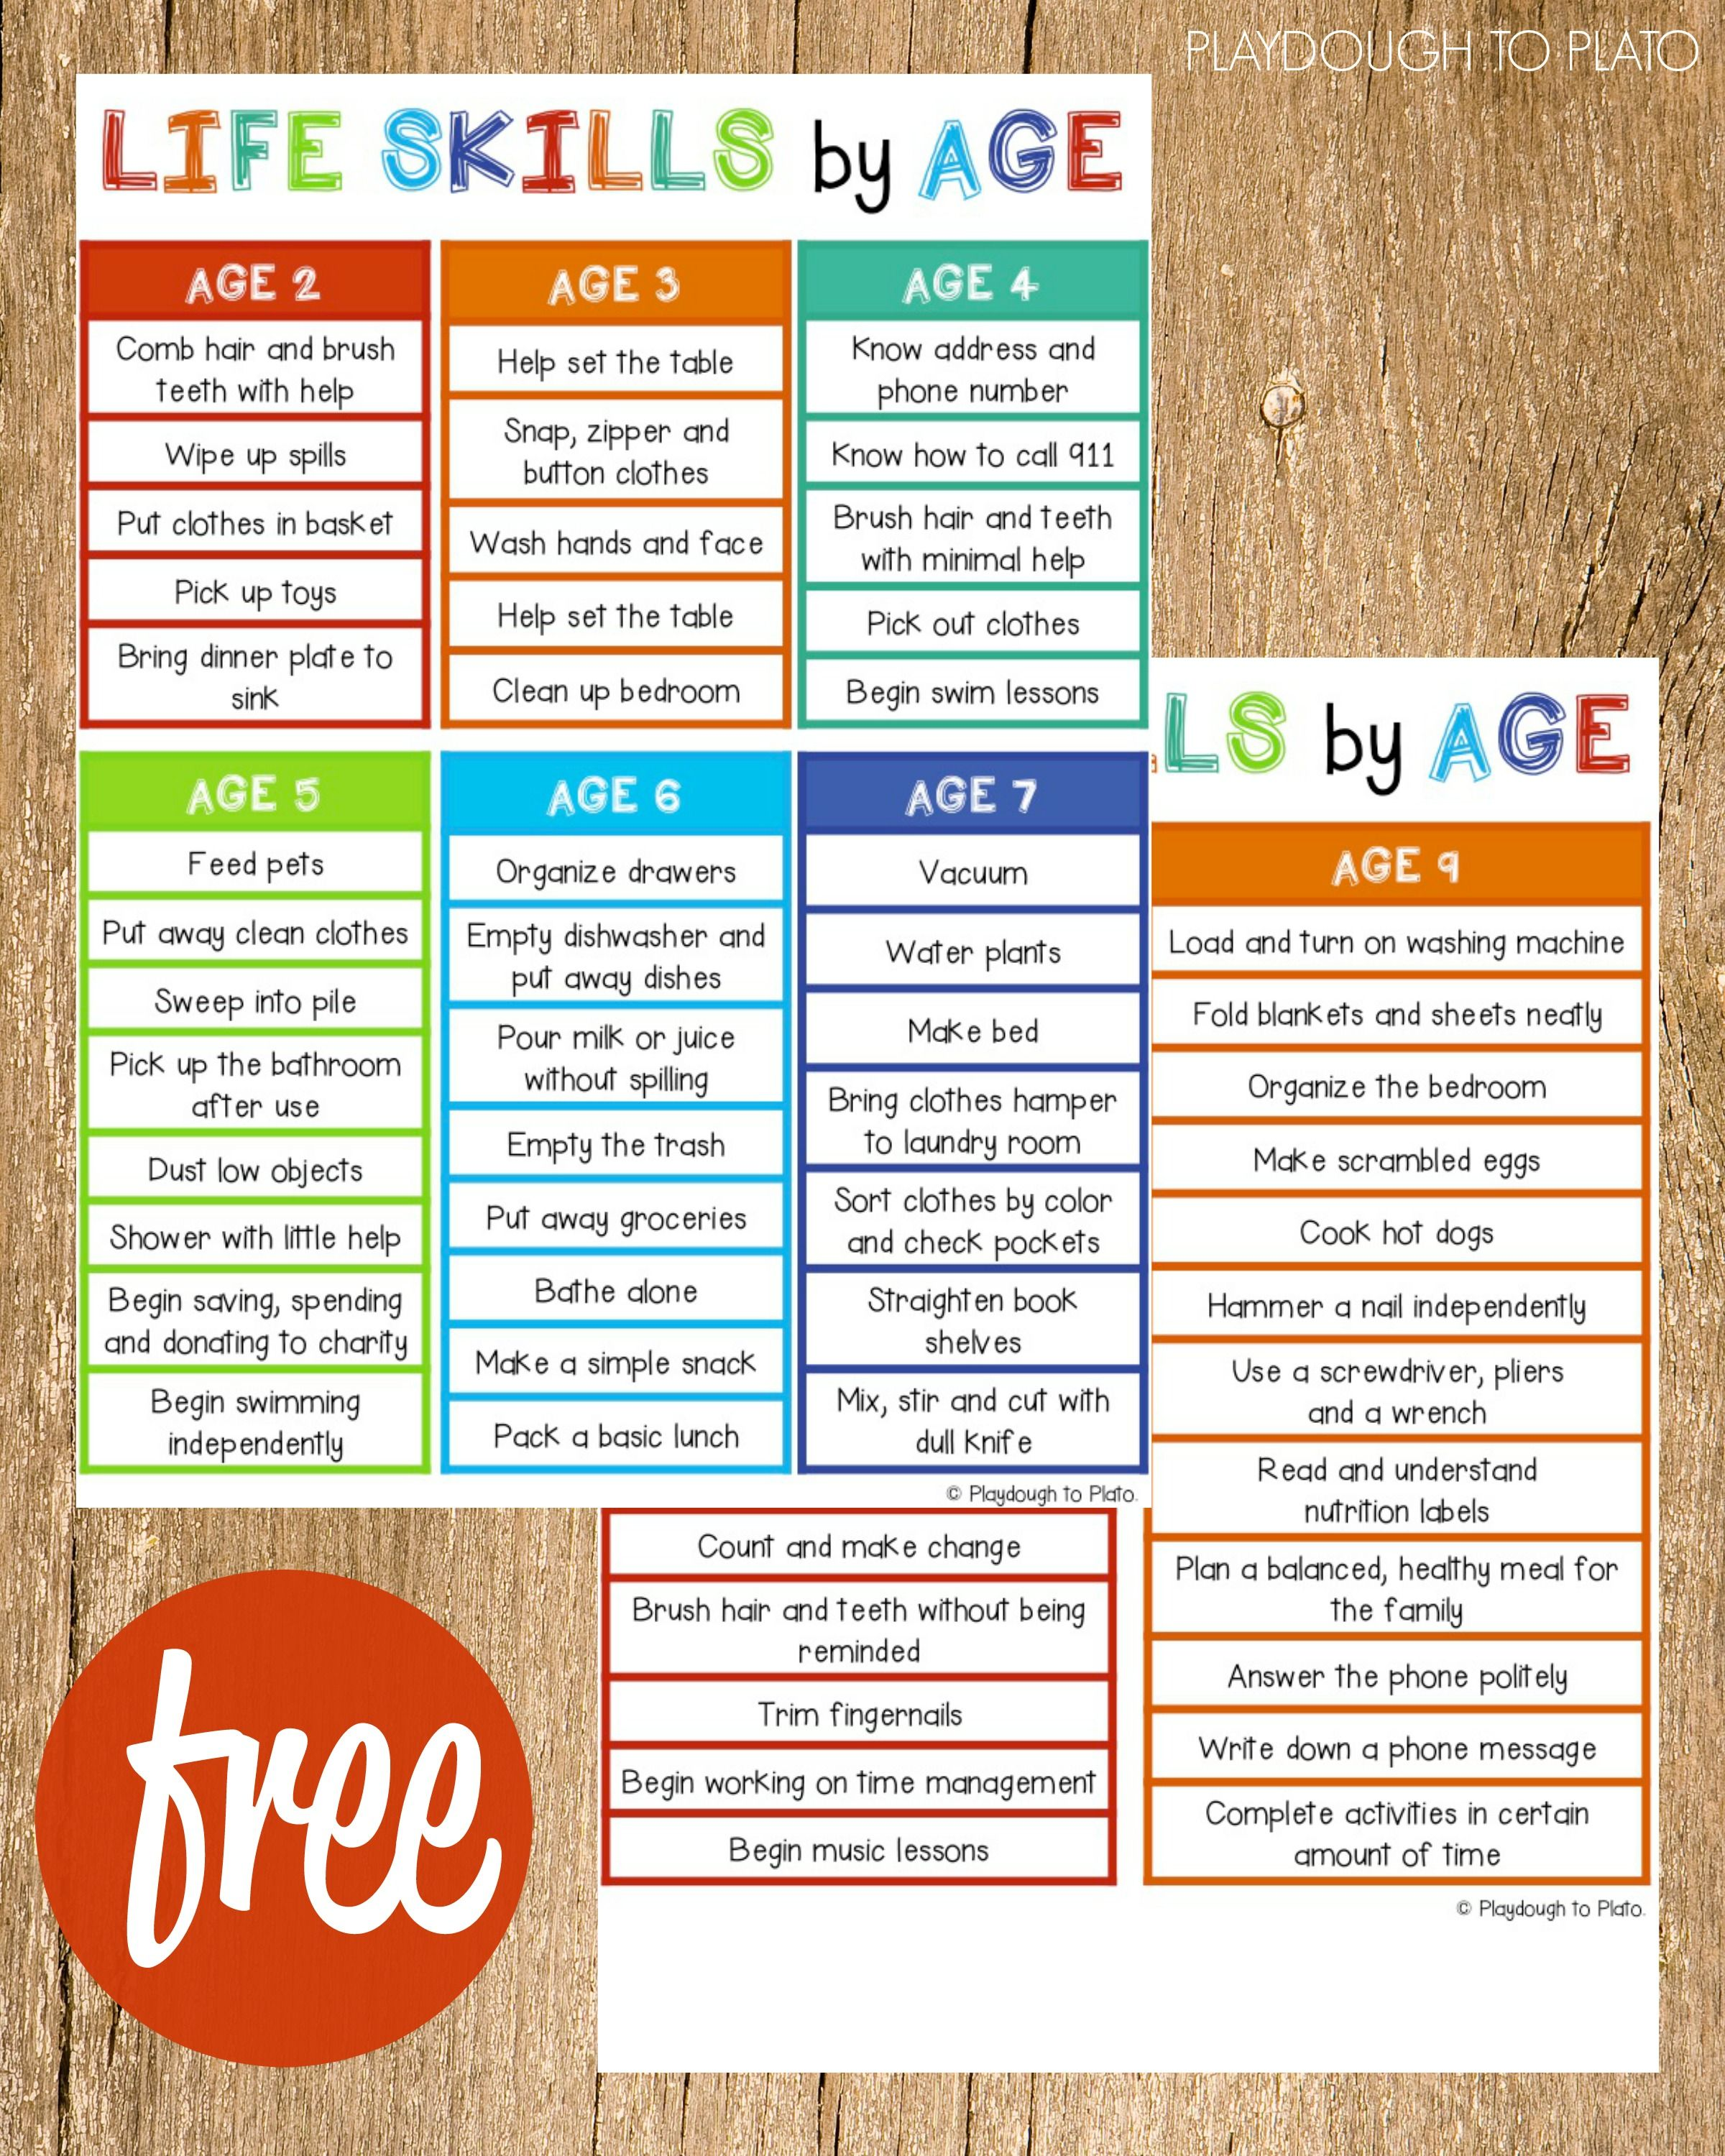 life skills checklist age appropriate chores for kids and kid super helpful life skills checklist age appropriate chores and responsibilities for kids from 2 to